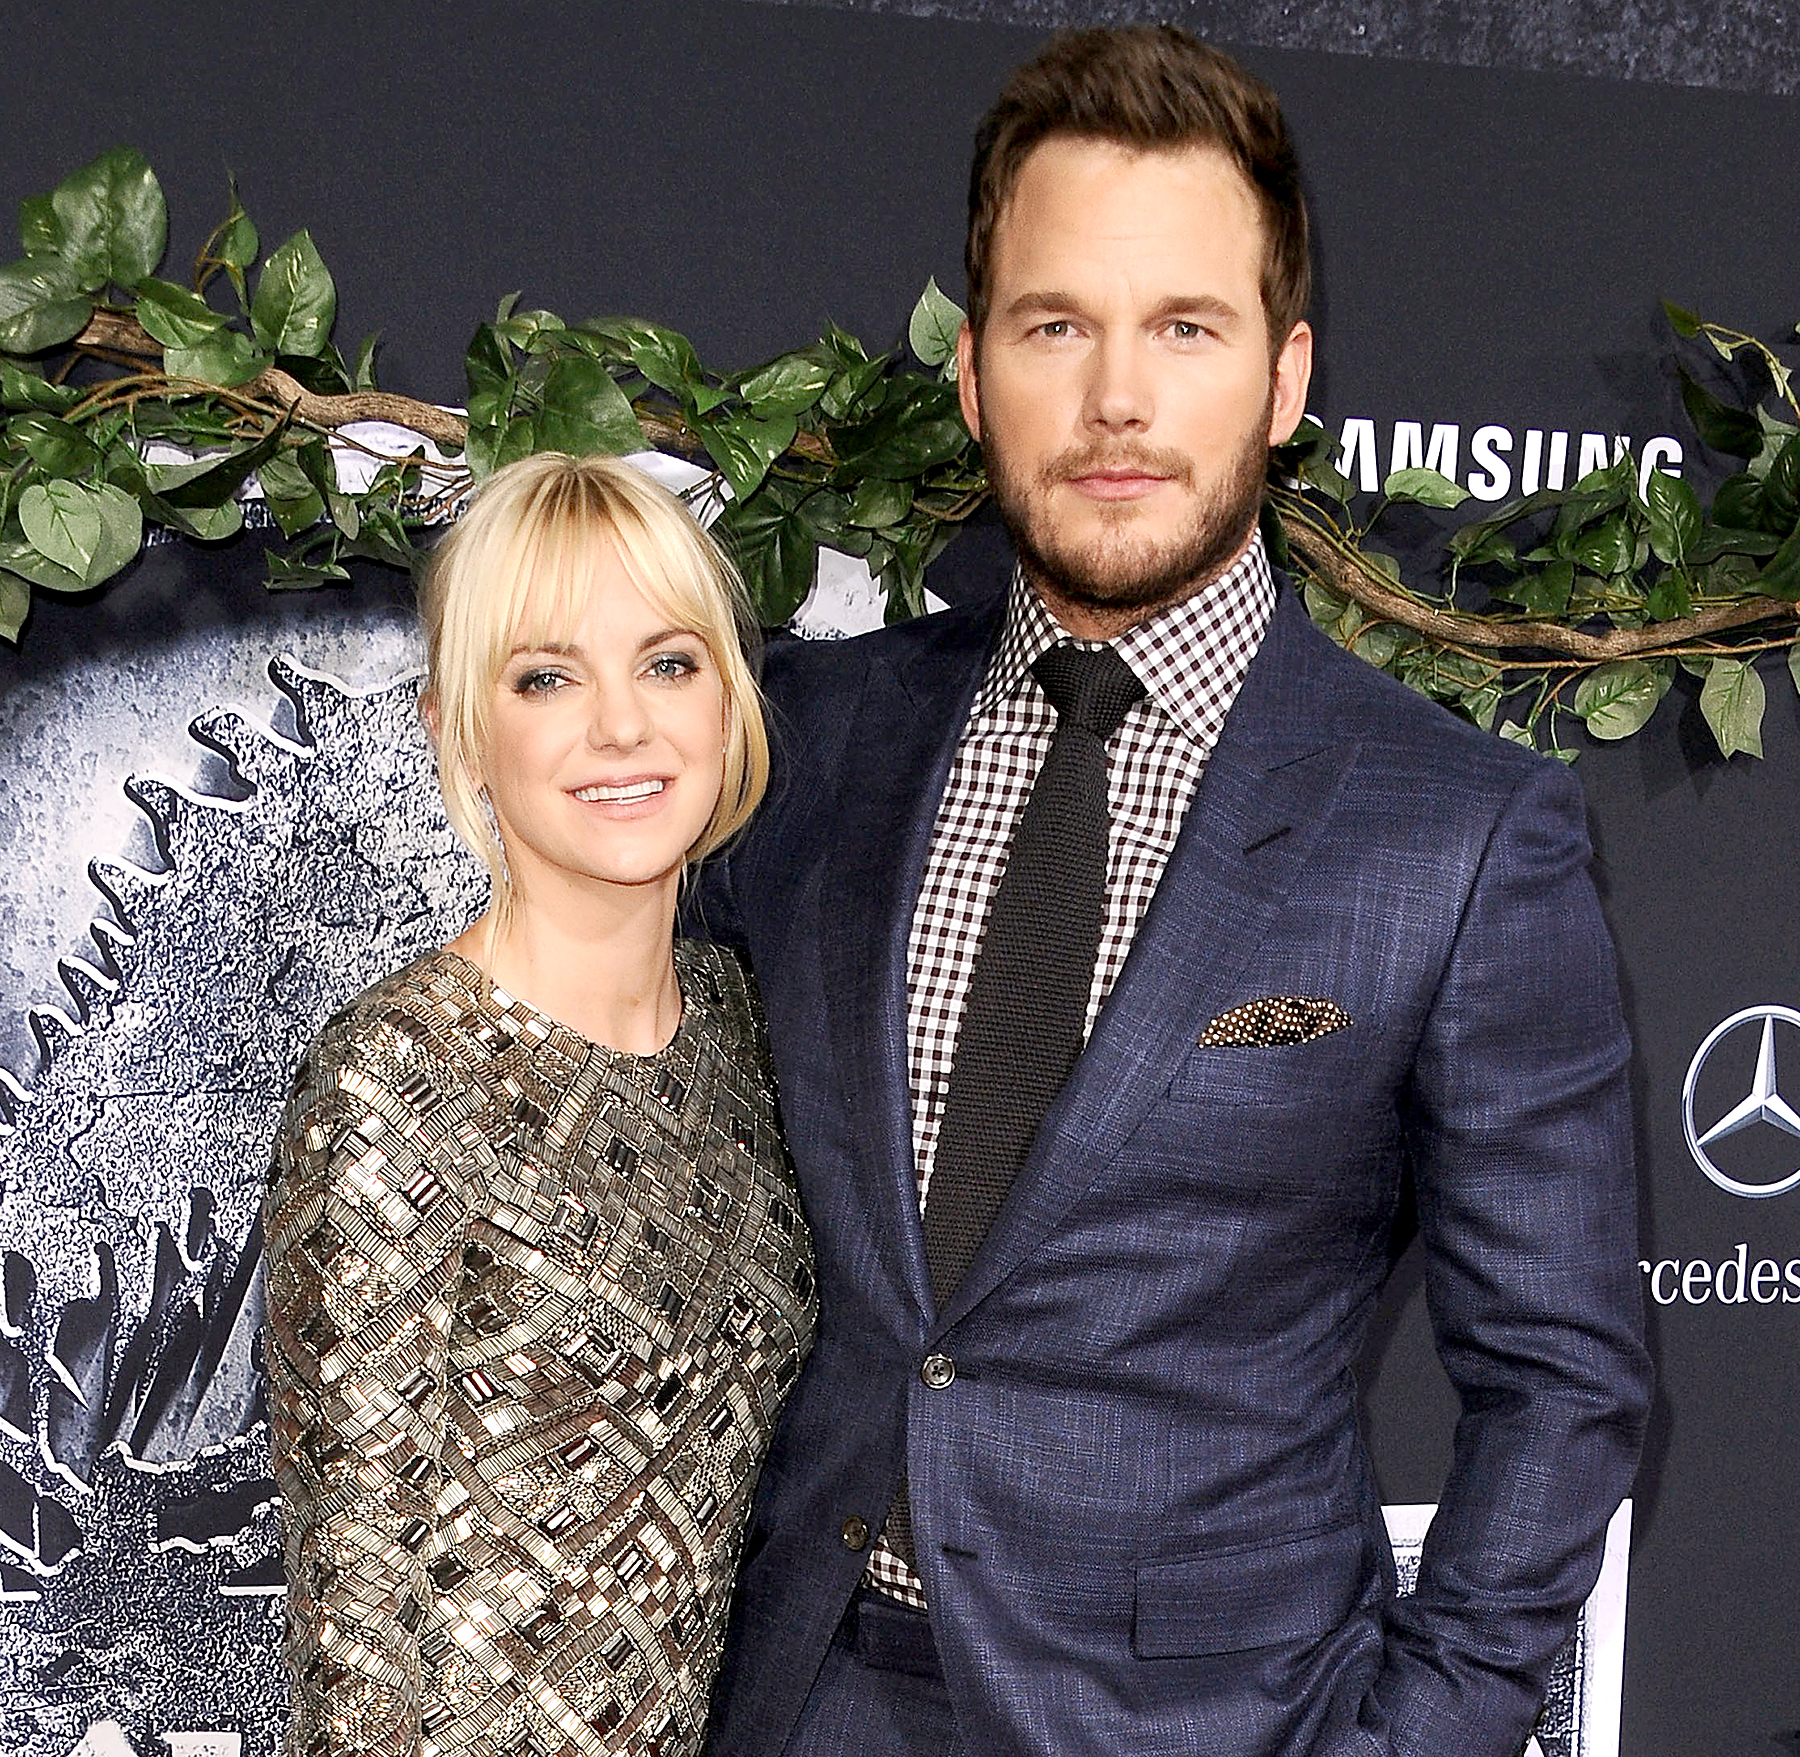 Anna Faris and Chris Pratt attend the premiere of